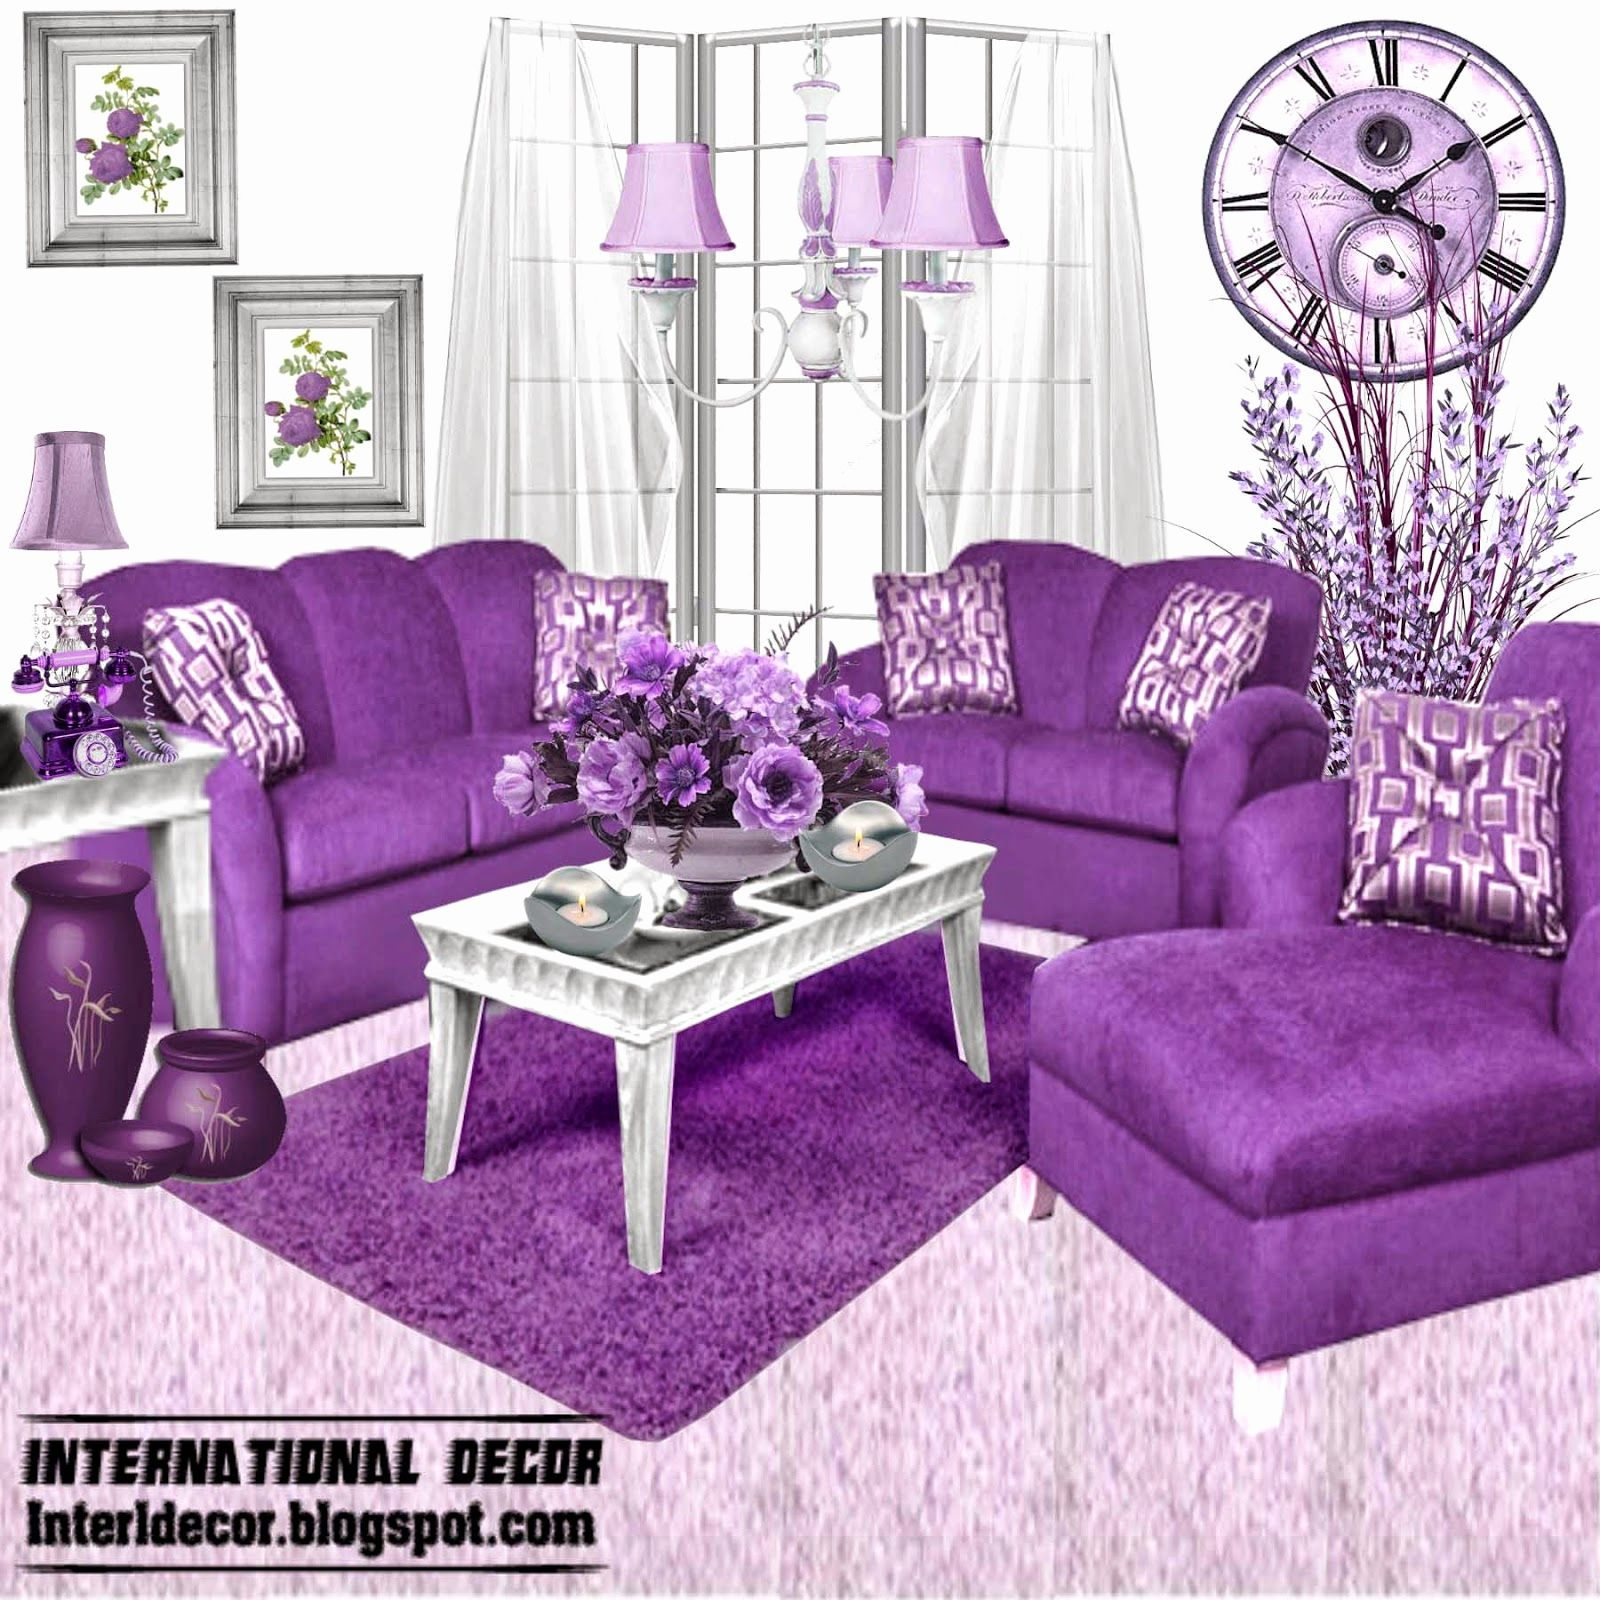 Charmant Good Plum Sofa Set Shot Plum Sofa Set Lovely Furniture Warm Purple Sofa To  Plete Your Living Room Decor